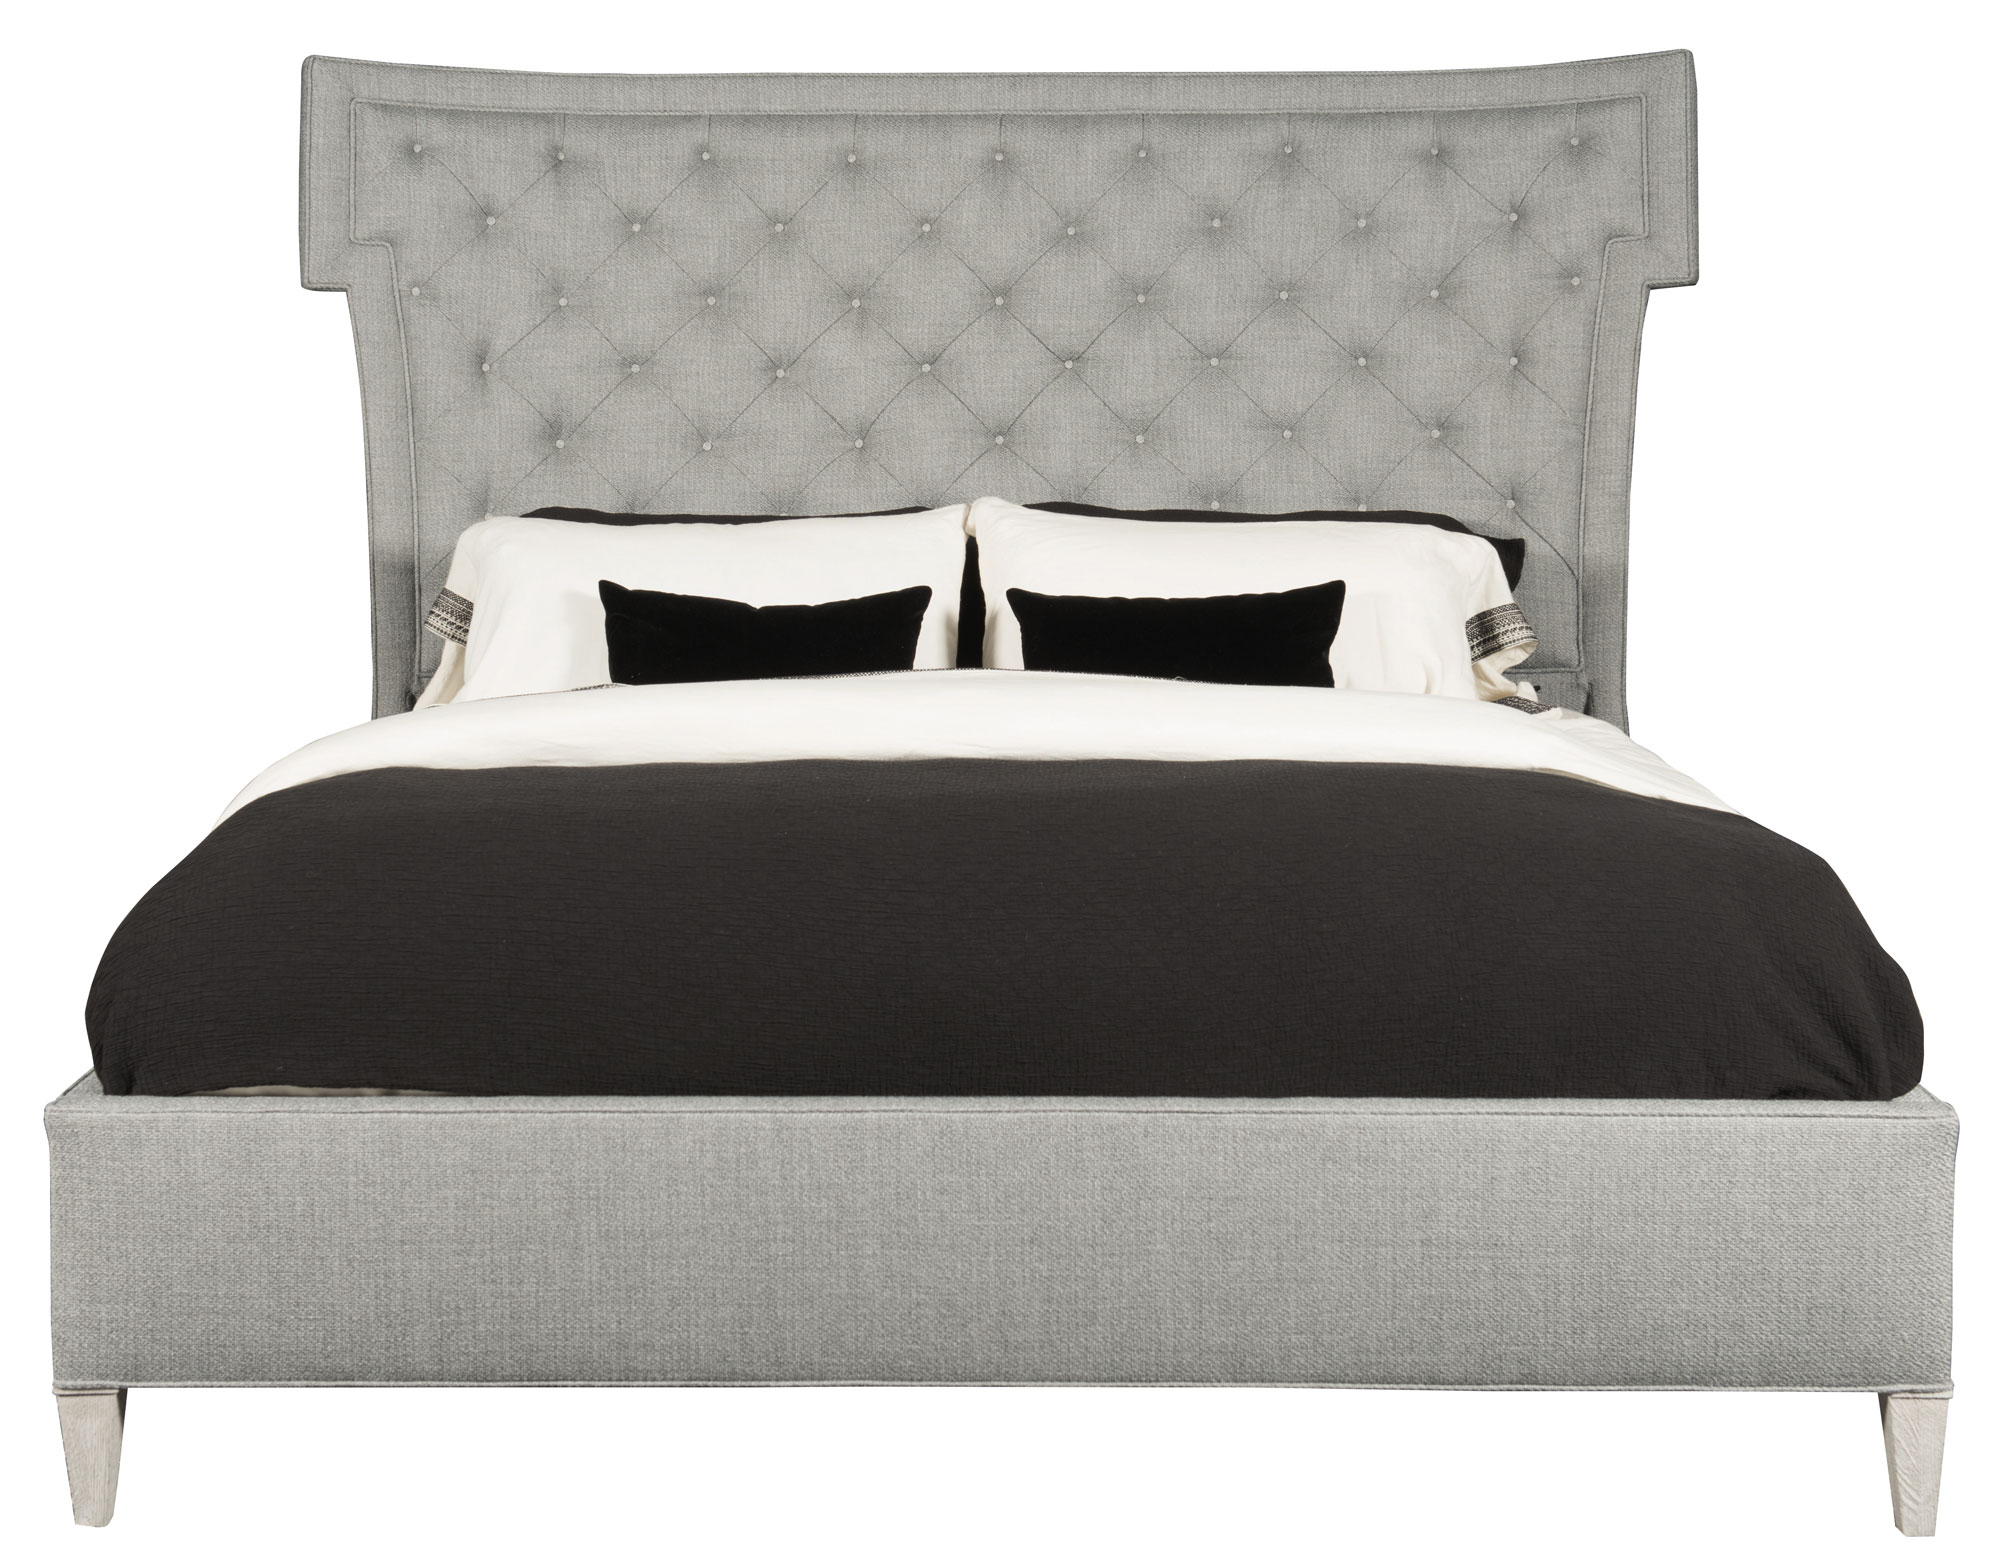 Domaine Blanc Upholstered Bed (Queen)